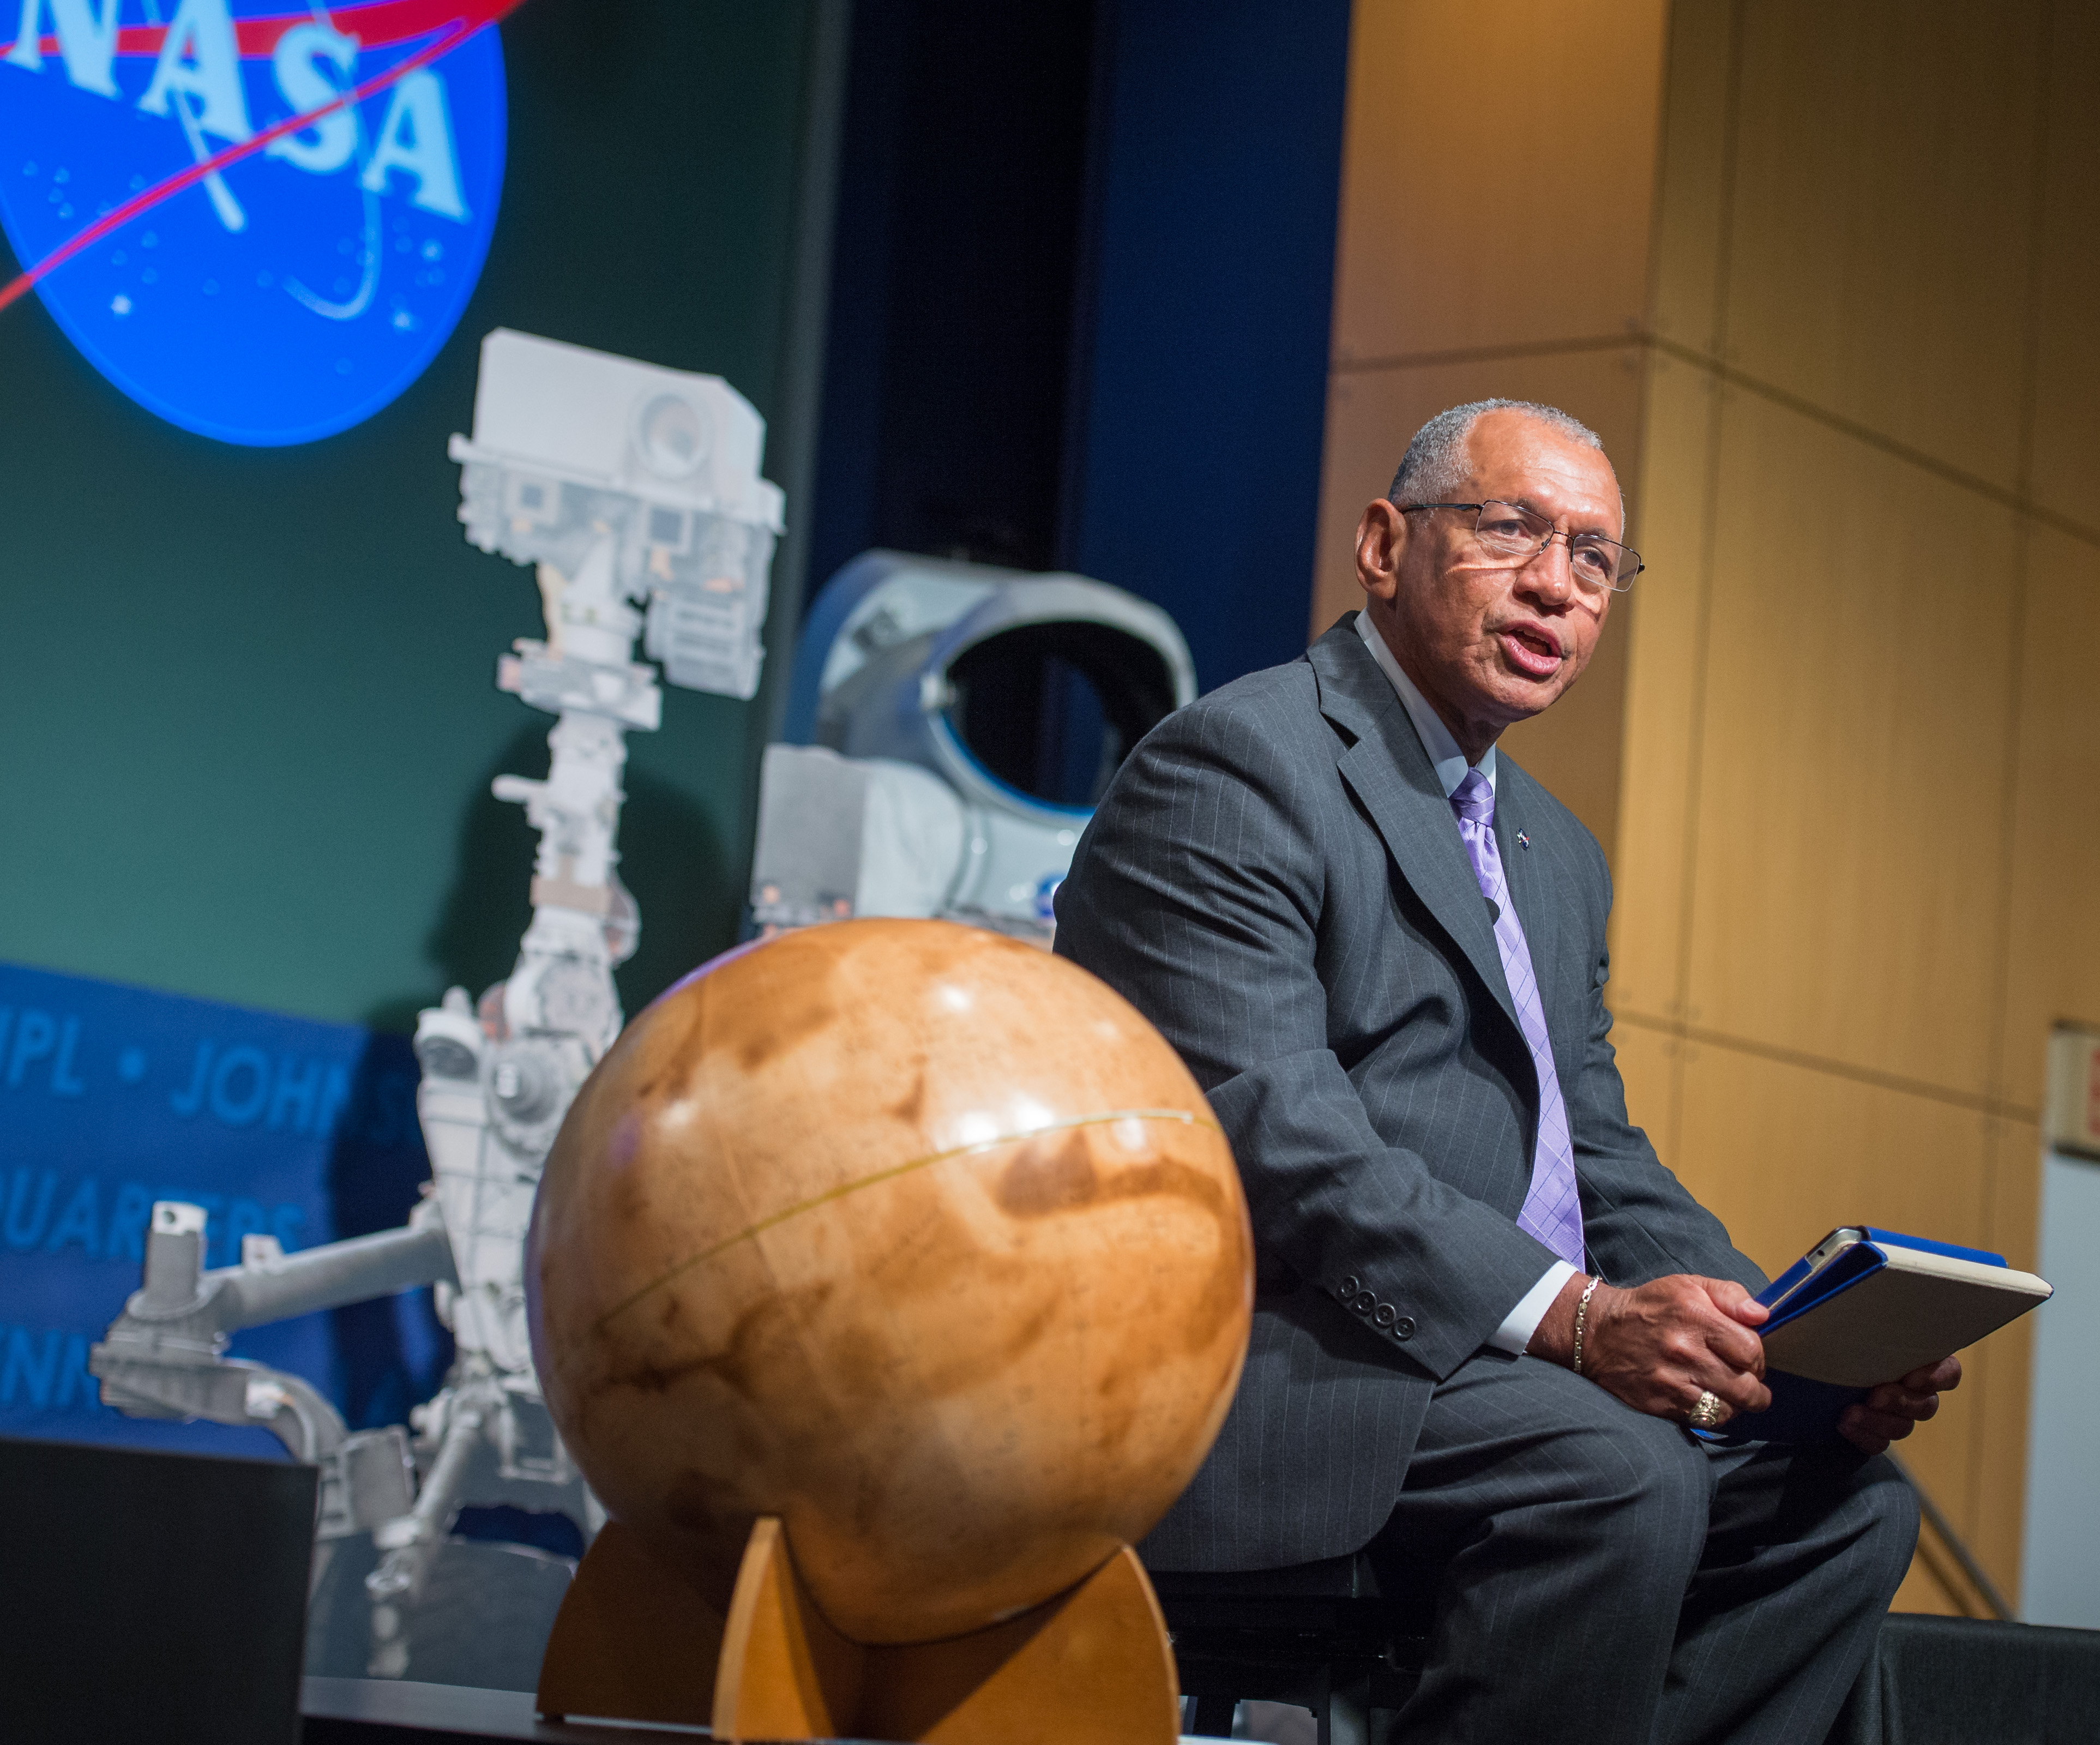 Charles Bolden Speaks at Curiosity's First Anniversary Event